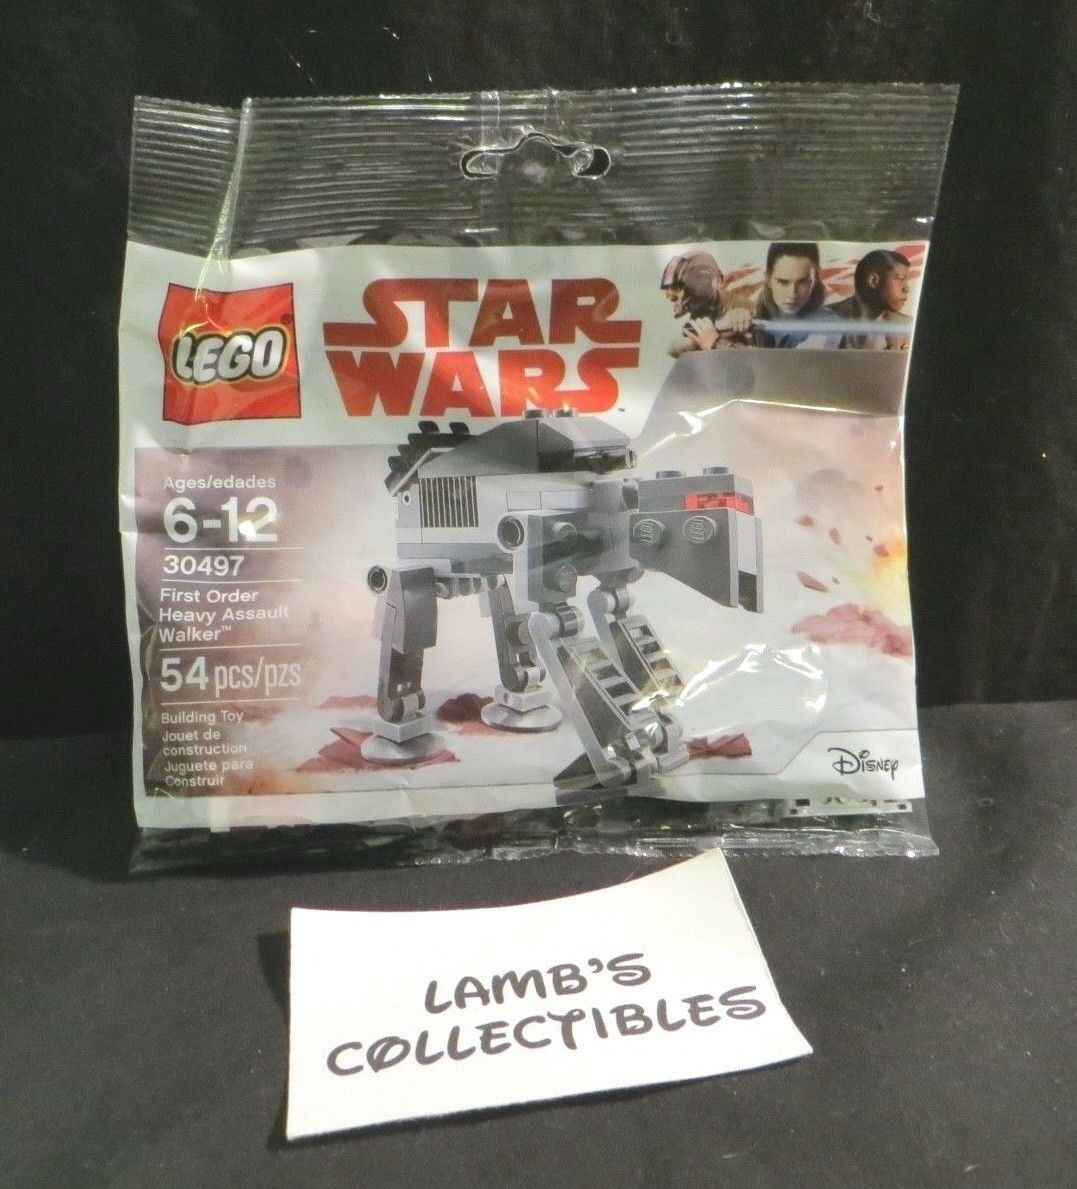 Primary image for Lego Star Wars 30497 First Order Heavy Assault Walker 54 pieces building blocks